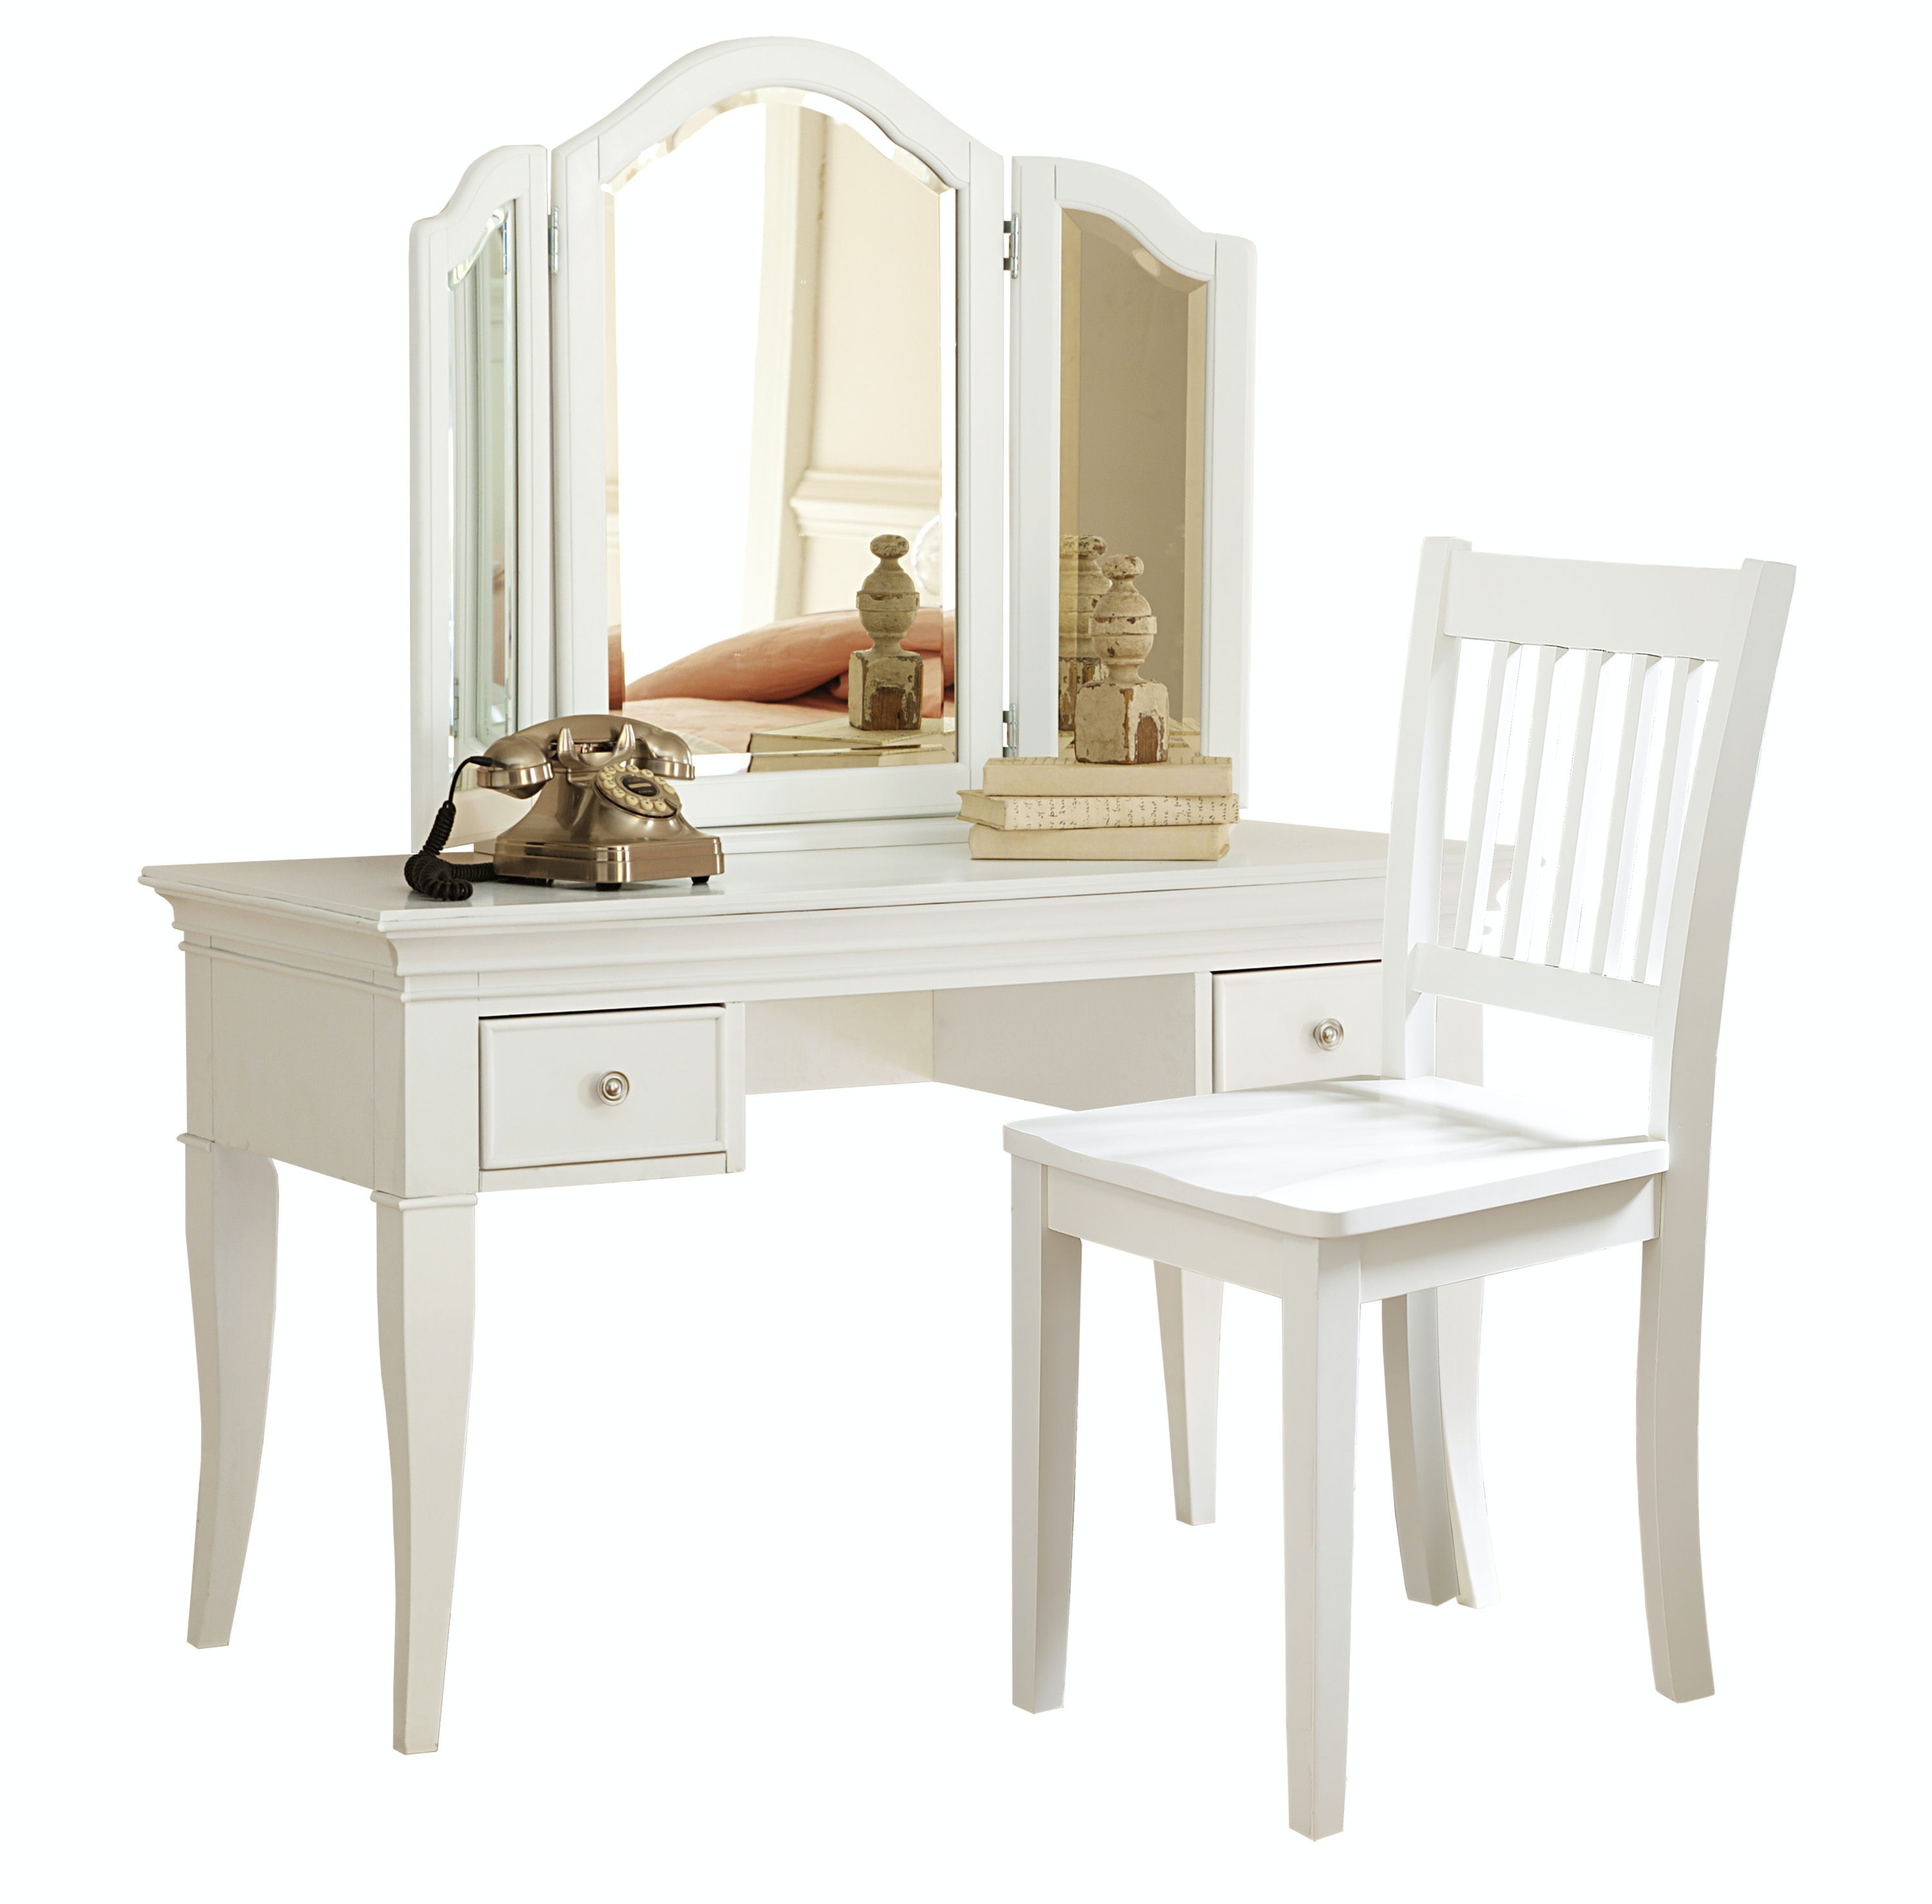 Hillsdale Kids And Teen Walnut Street Desk With Vanity Storage Mirror And  Chair 8540NDVC